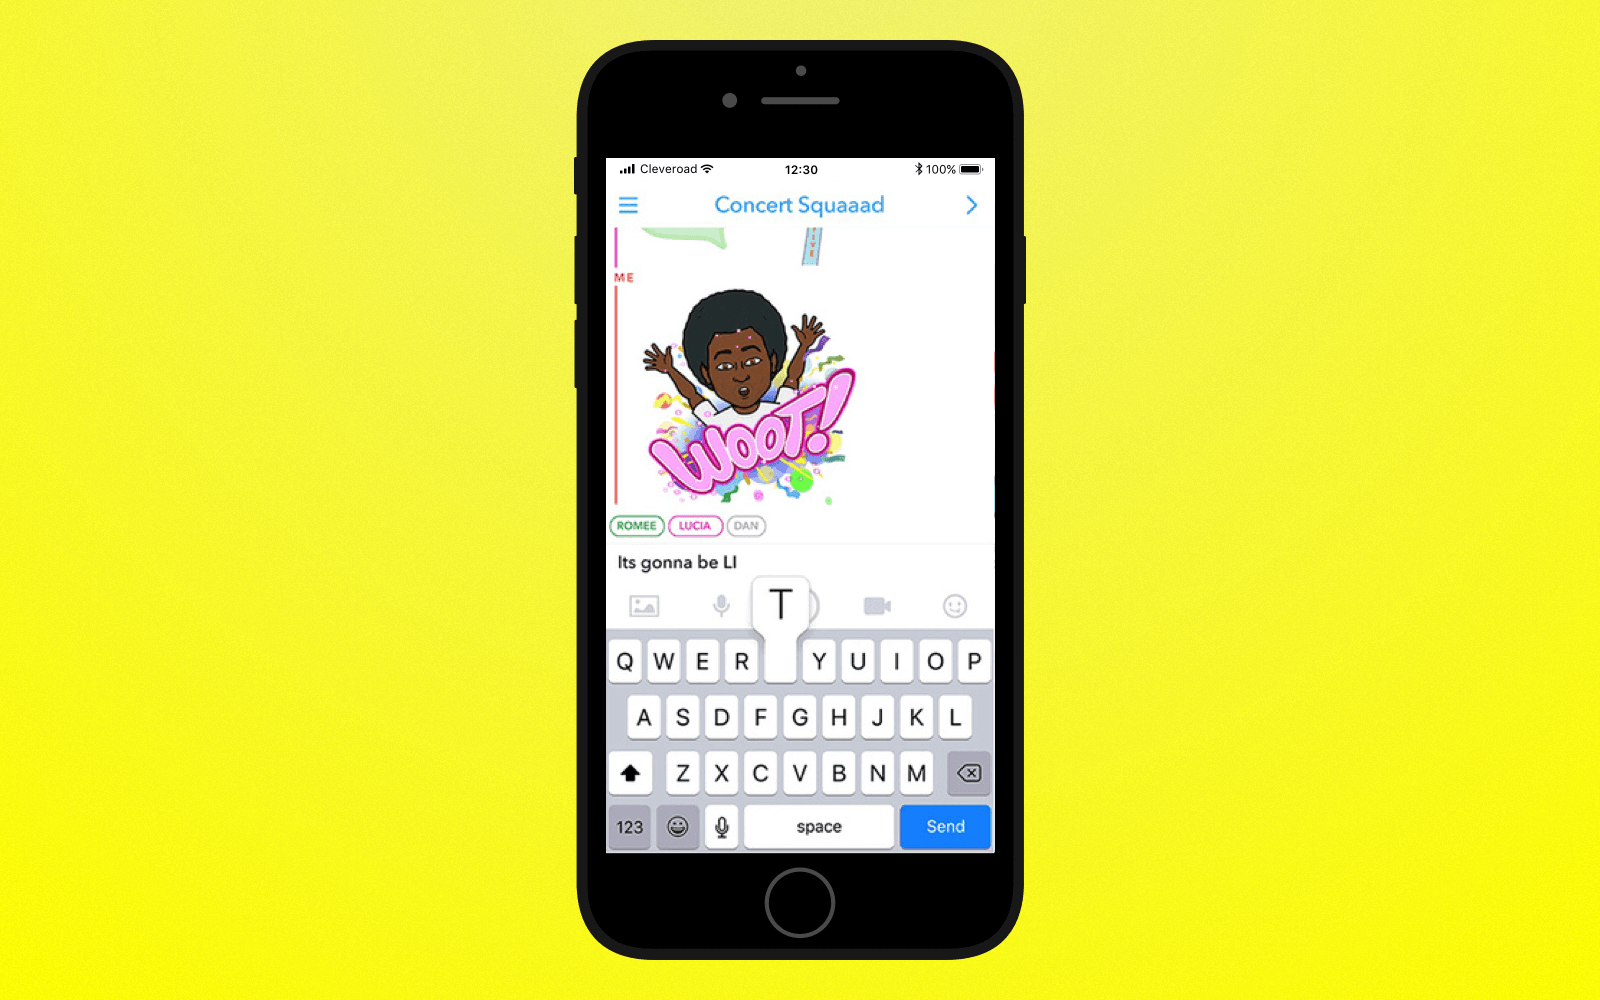 Add chatting feature to create an app like Snapchat